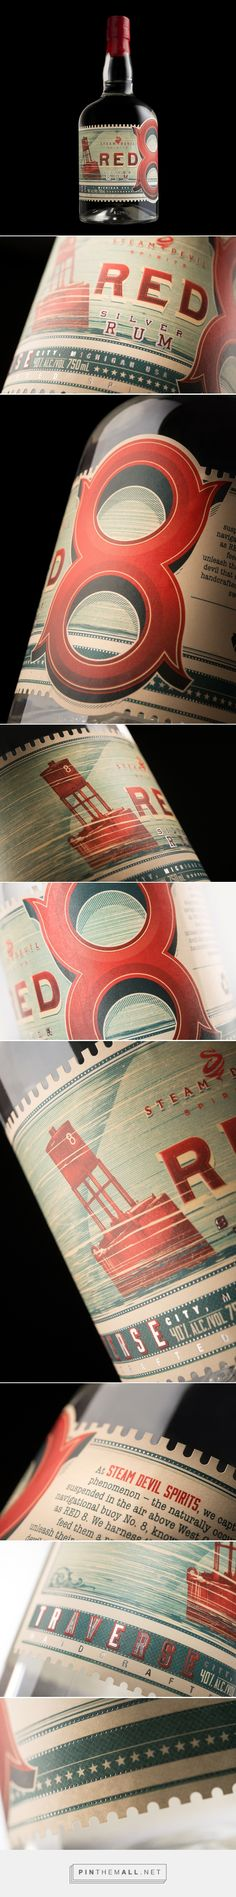 Red 8 Rum for Steam Devil Spirits packaging design by Hired Guns Creative - http://www.packagingoftheworld.com/2017/05/red-8-rum-for-steam-devil-spirits.html